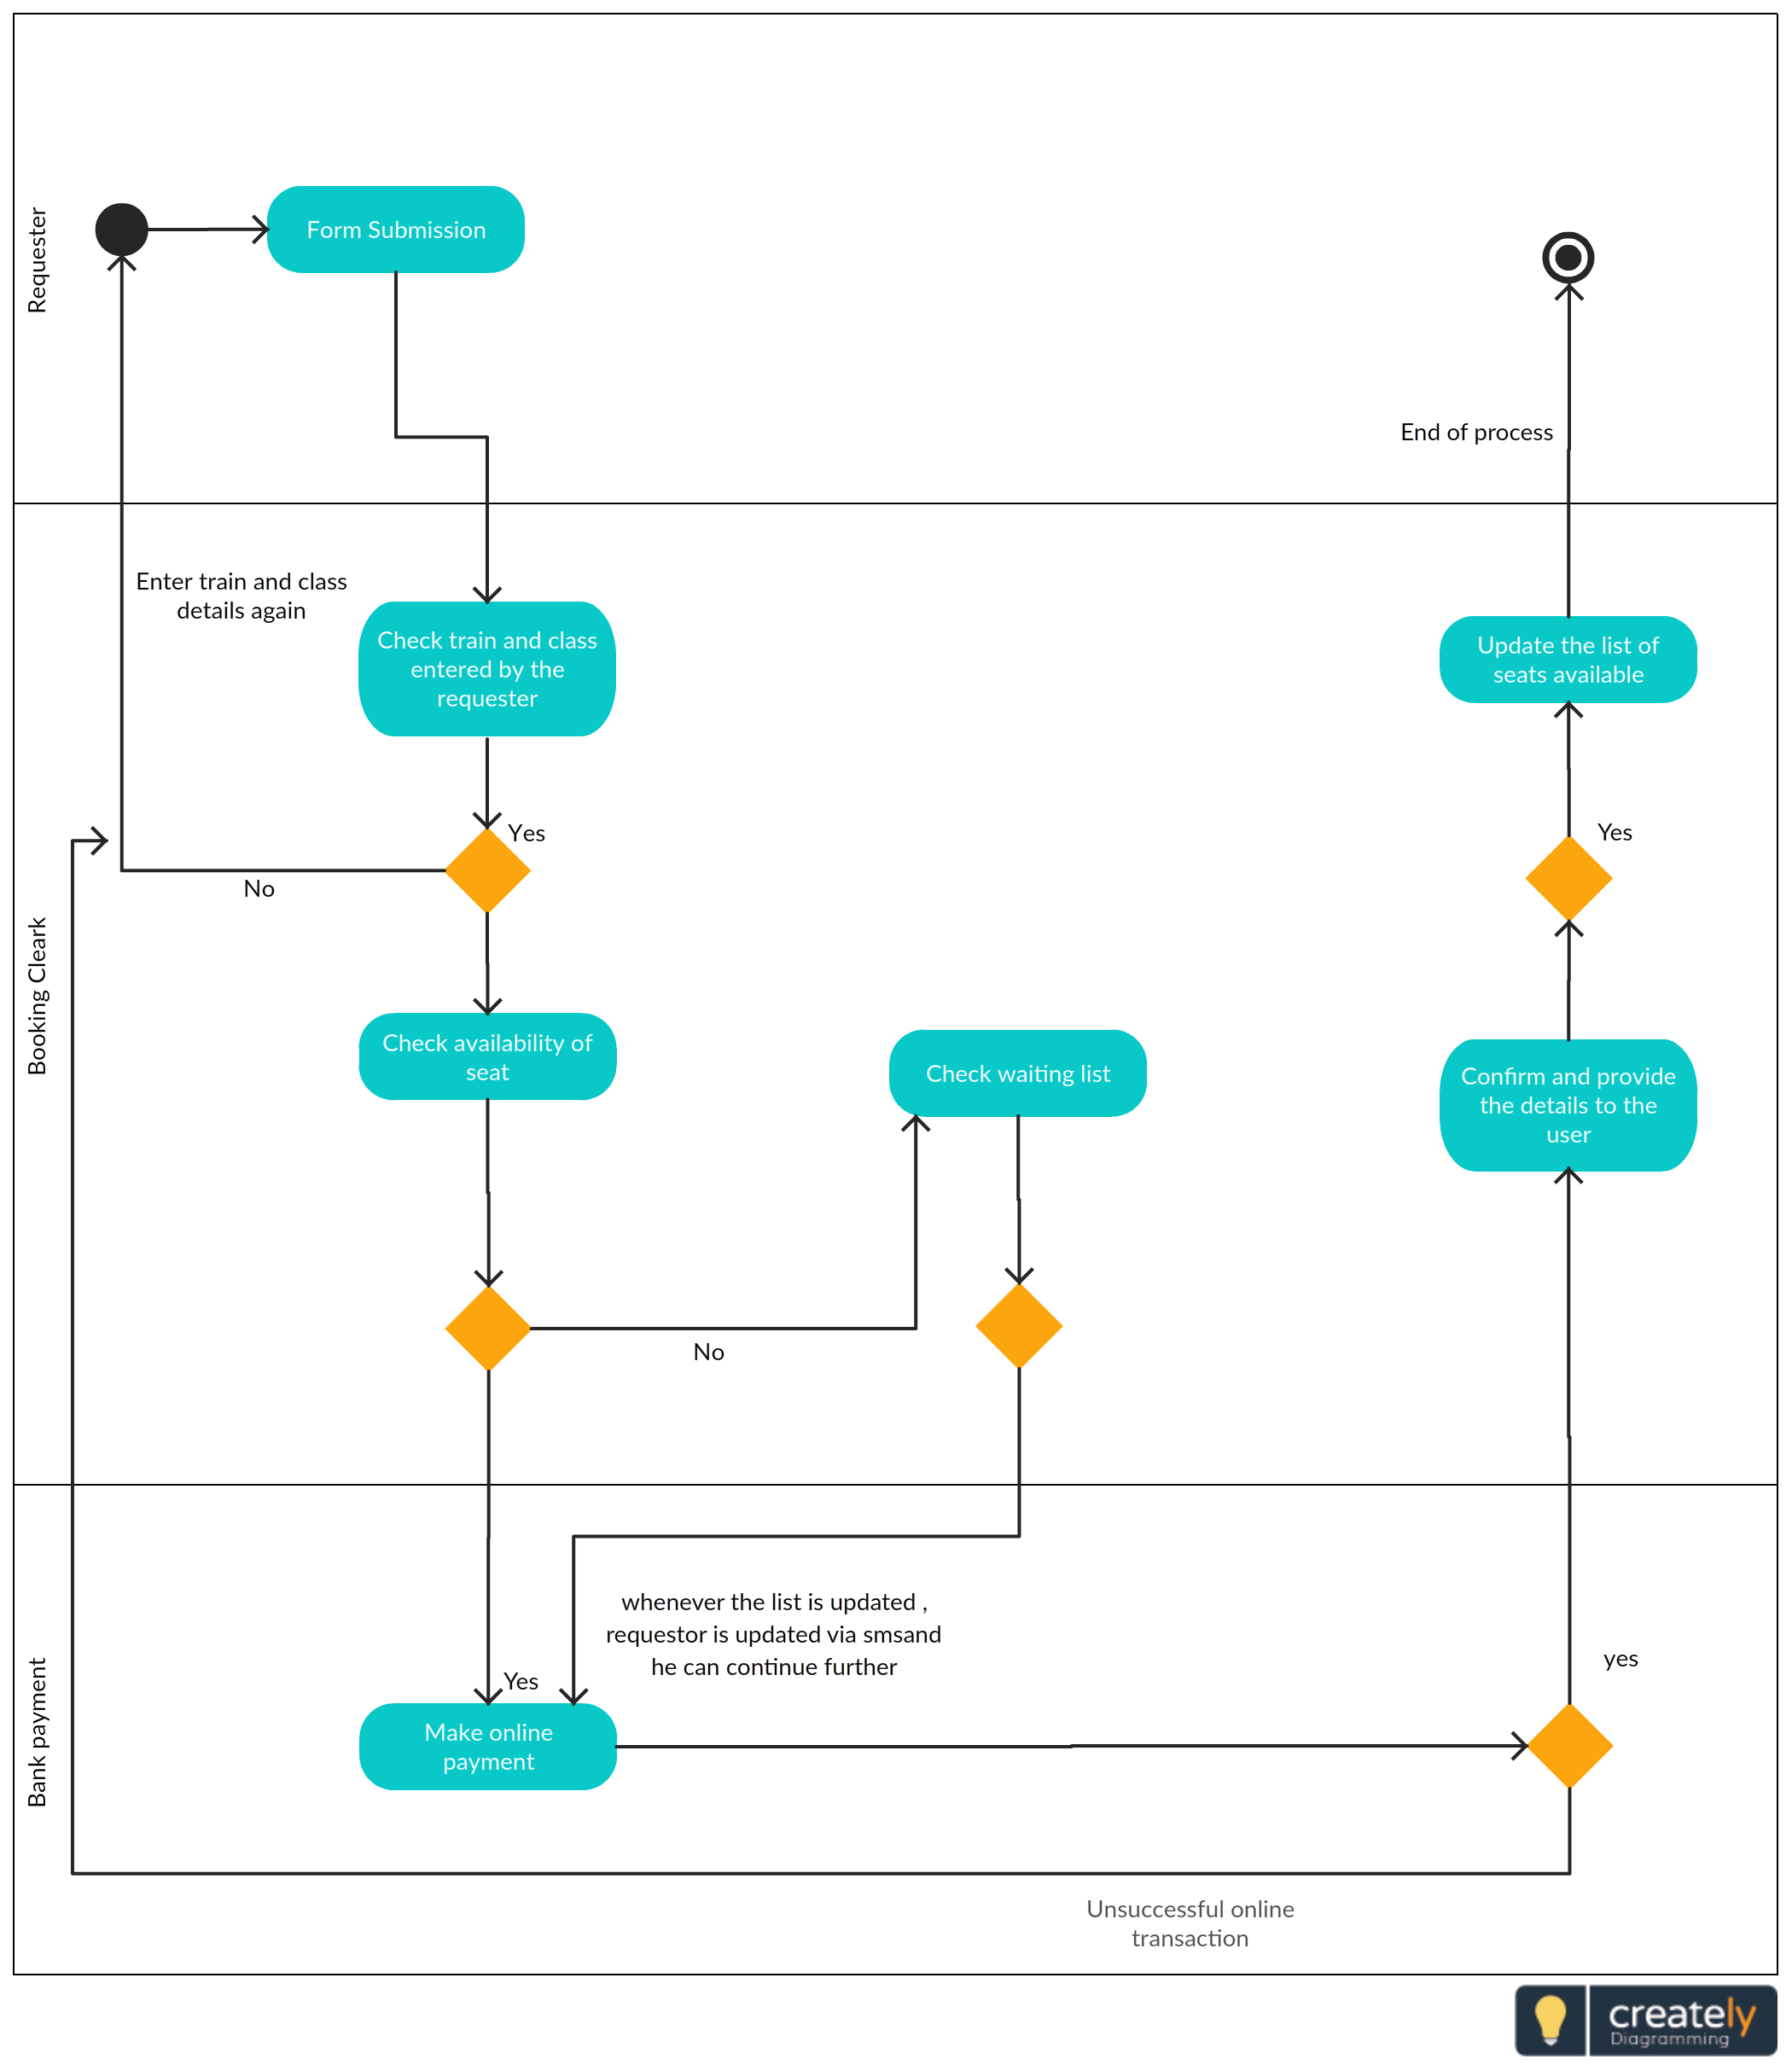 medium resolution of an activity diagram template for a railway ticket reservation workflow this flow presents the subjects involved in the system and the process of booking